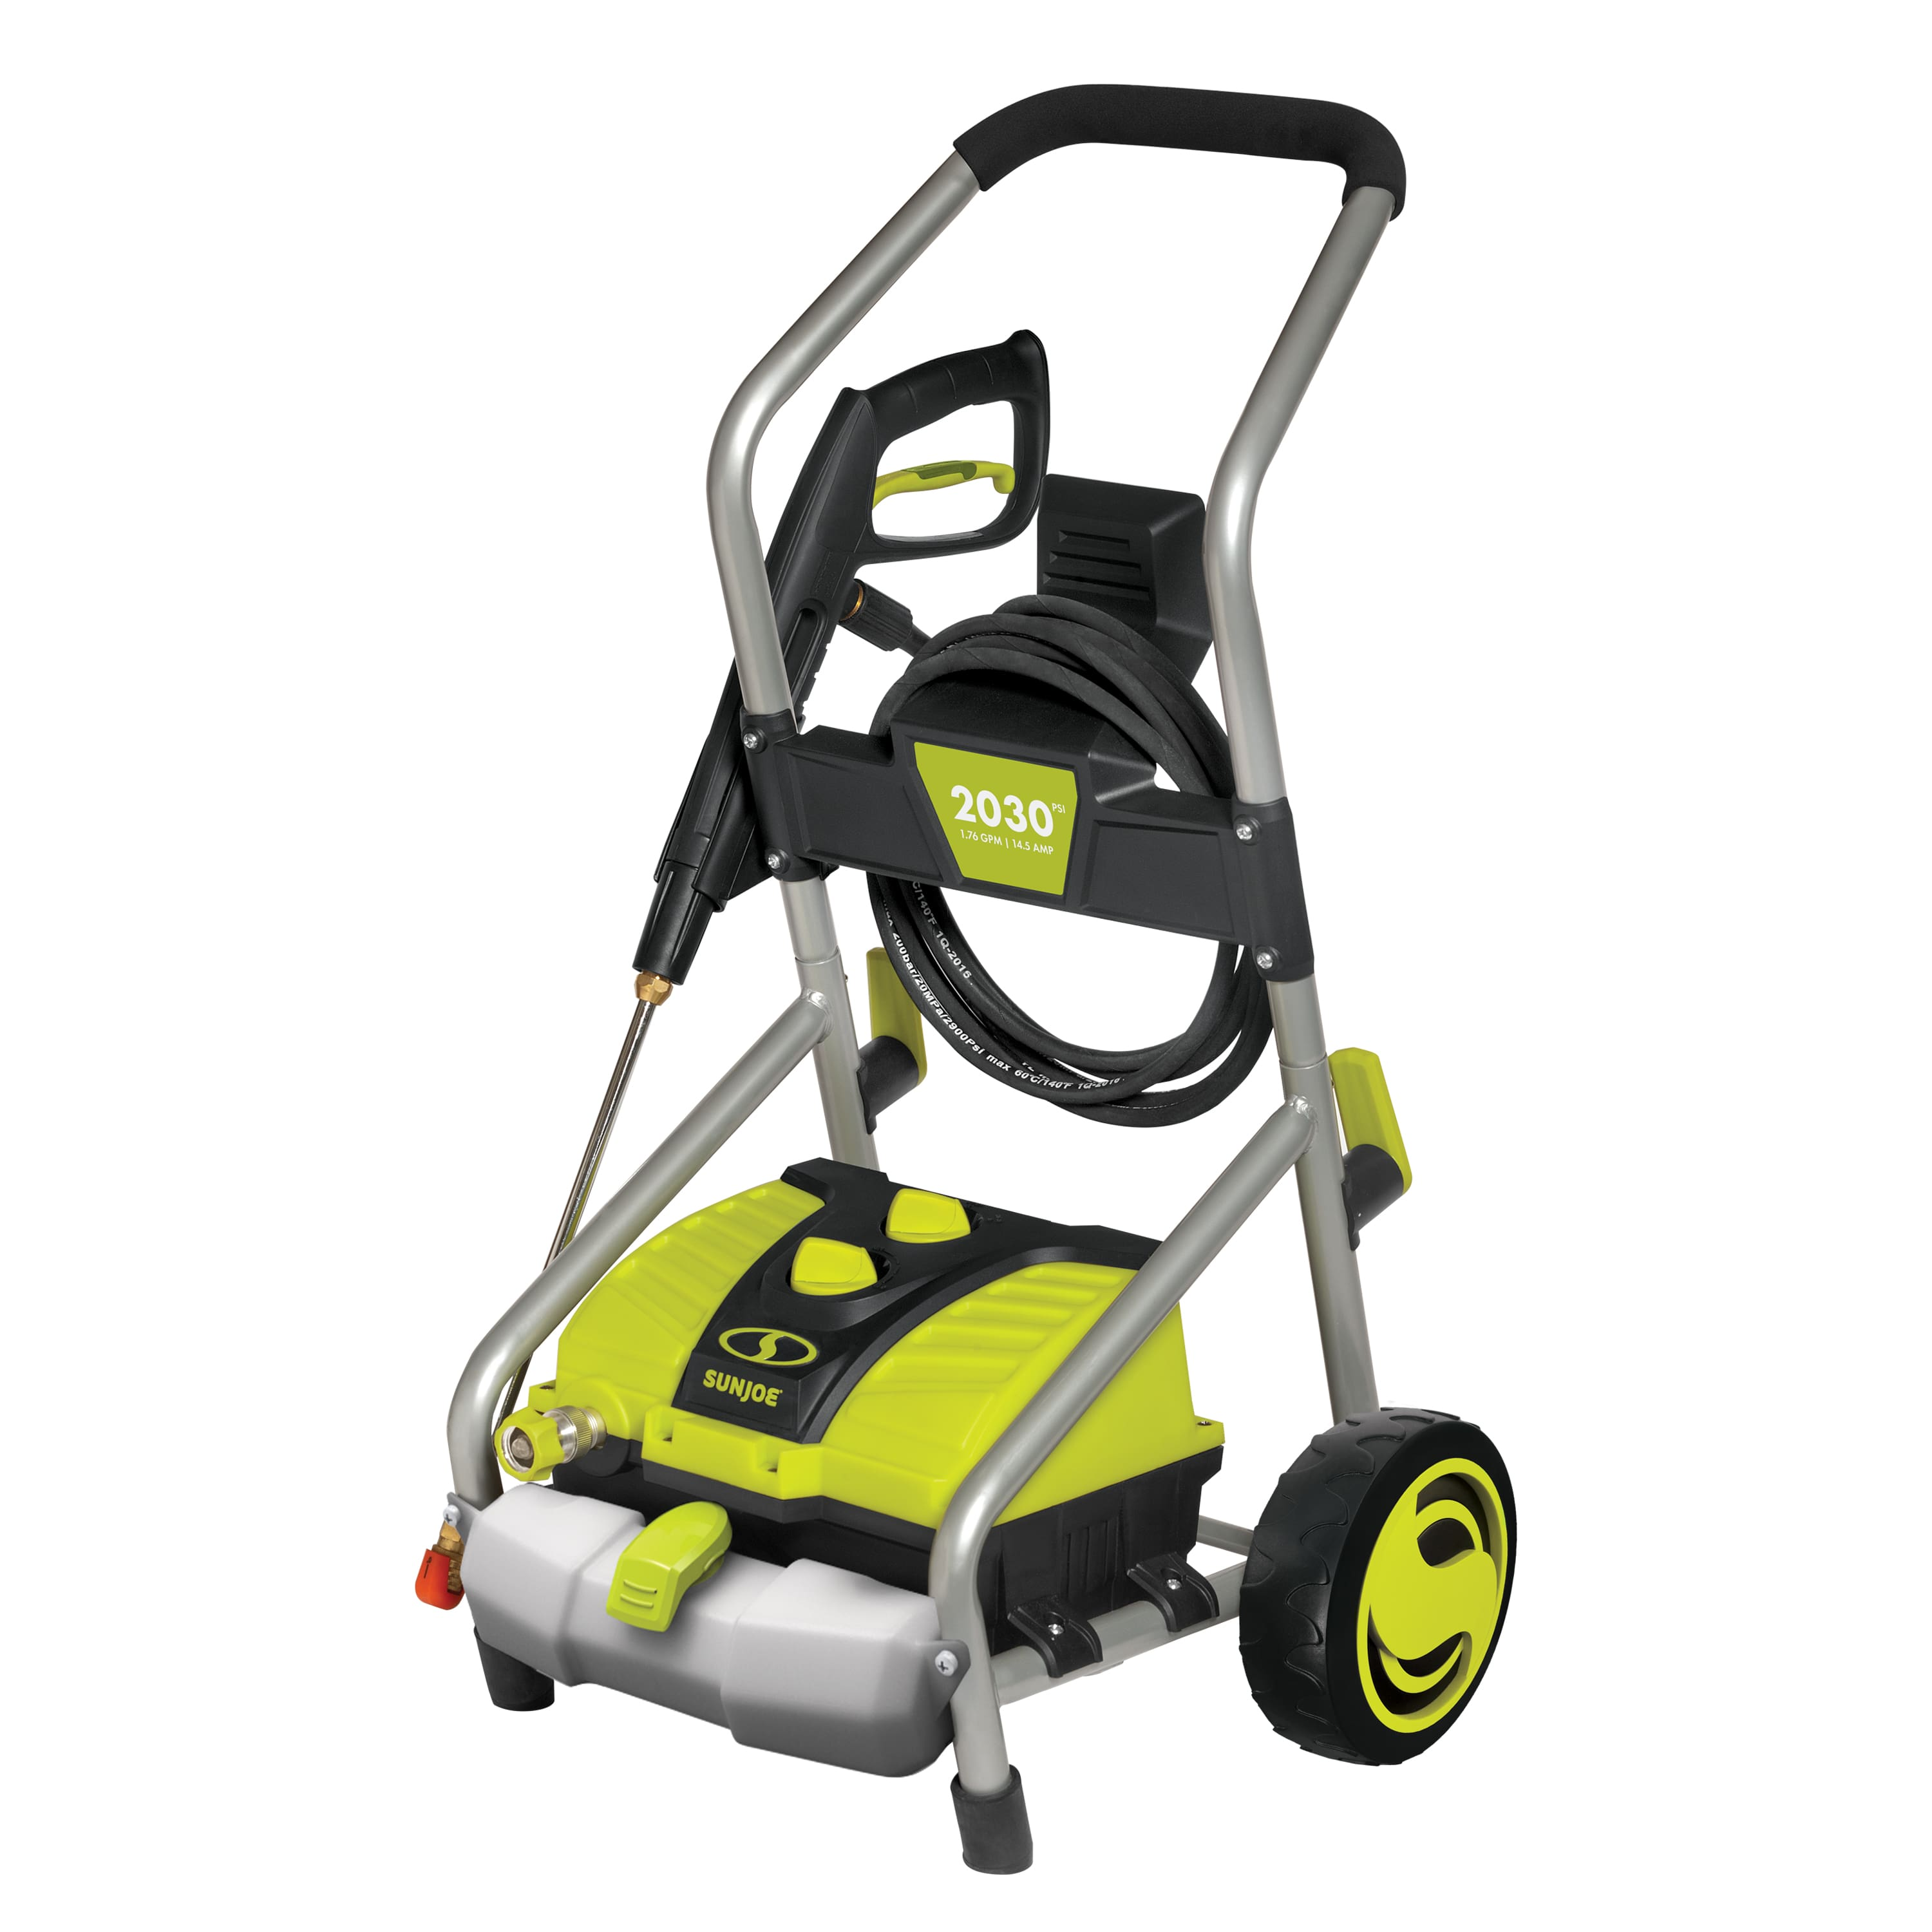 Sun Joe Pressure Washers SPX3001 @139 and SPX4000 @129.98 and free shipping at walmart $129.98